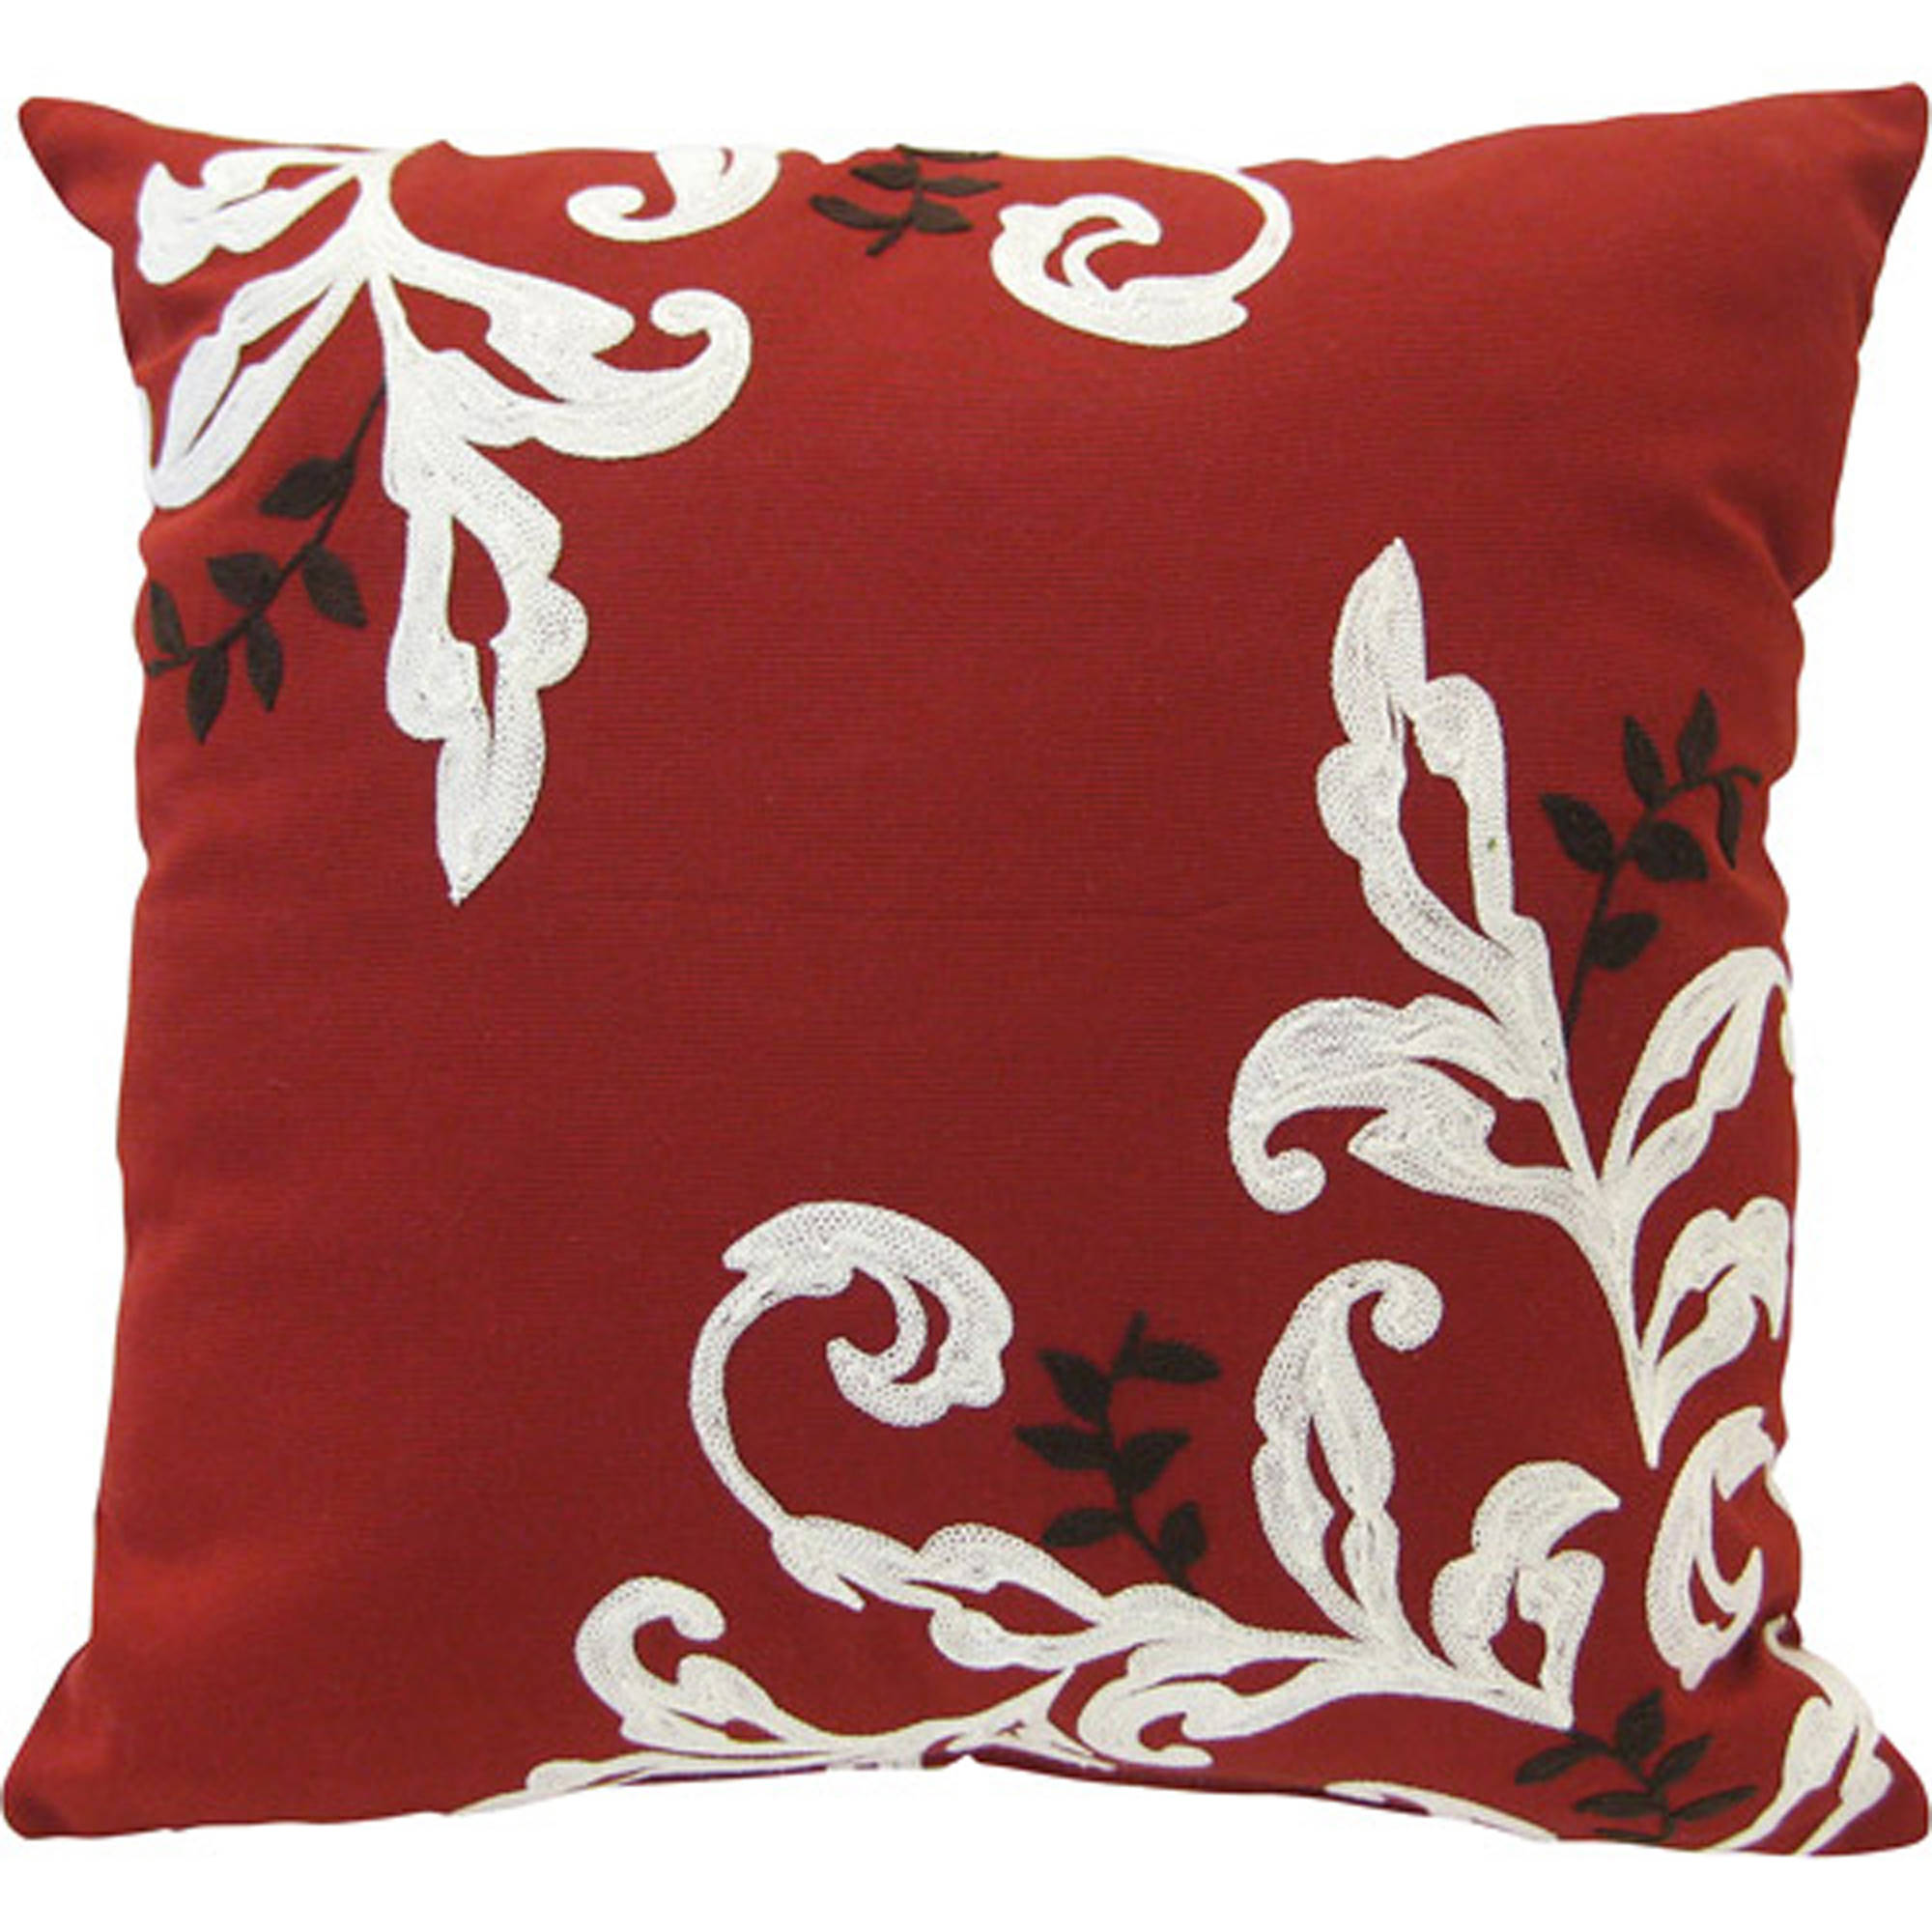 "Better Homes and Gardens Citrus Scroll 18""x18"" Decorative Pillow"